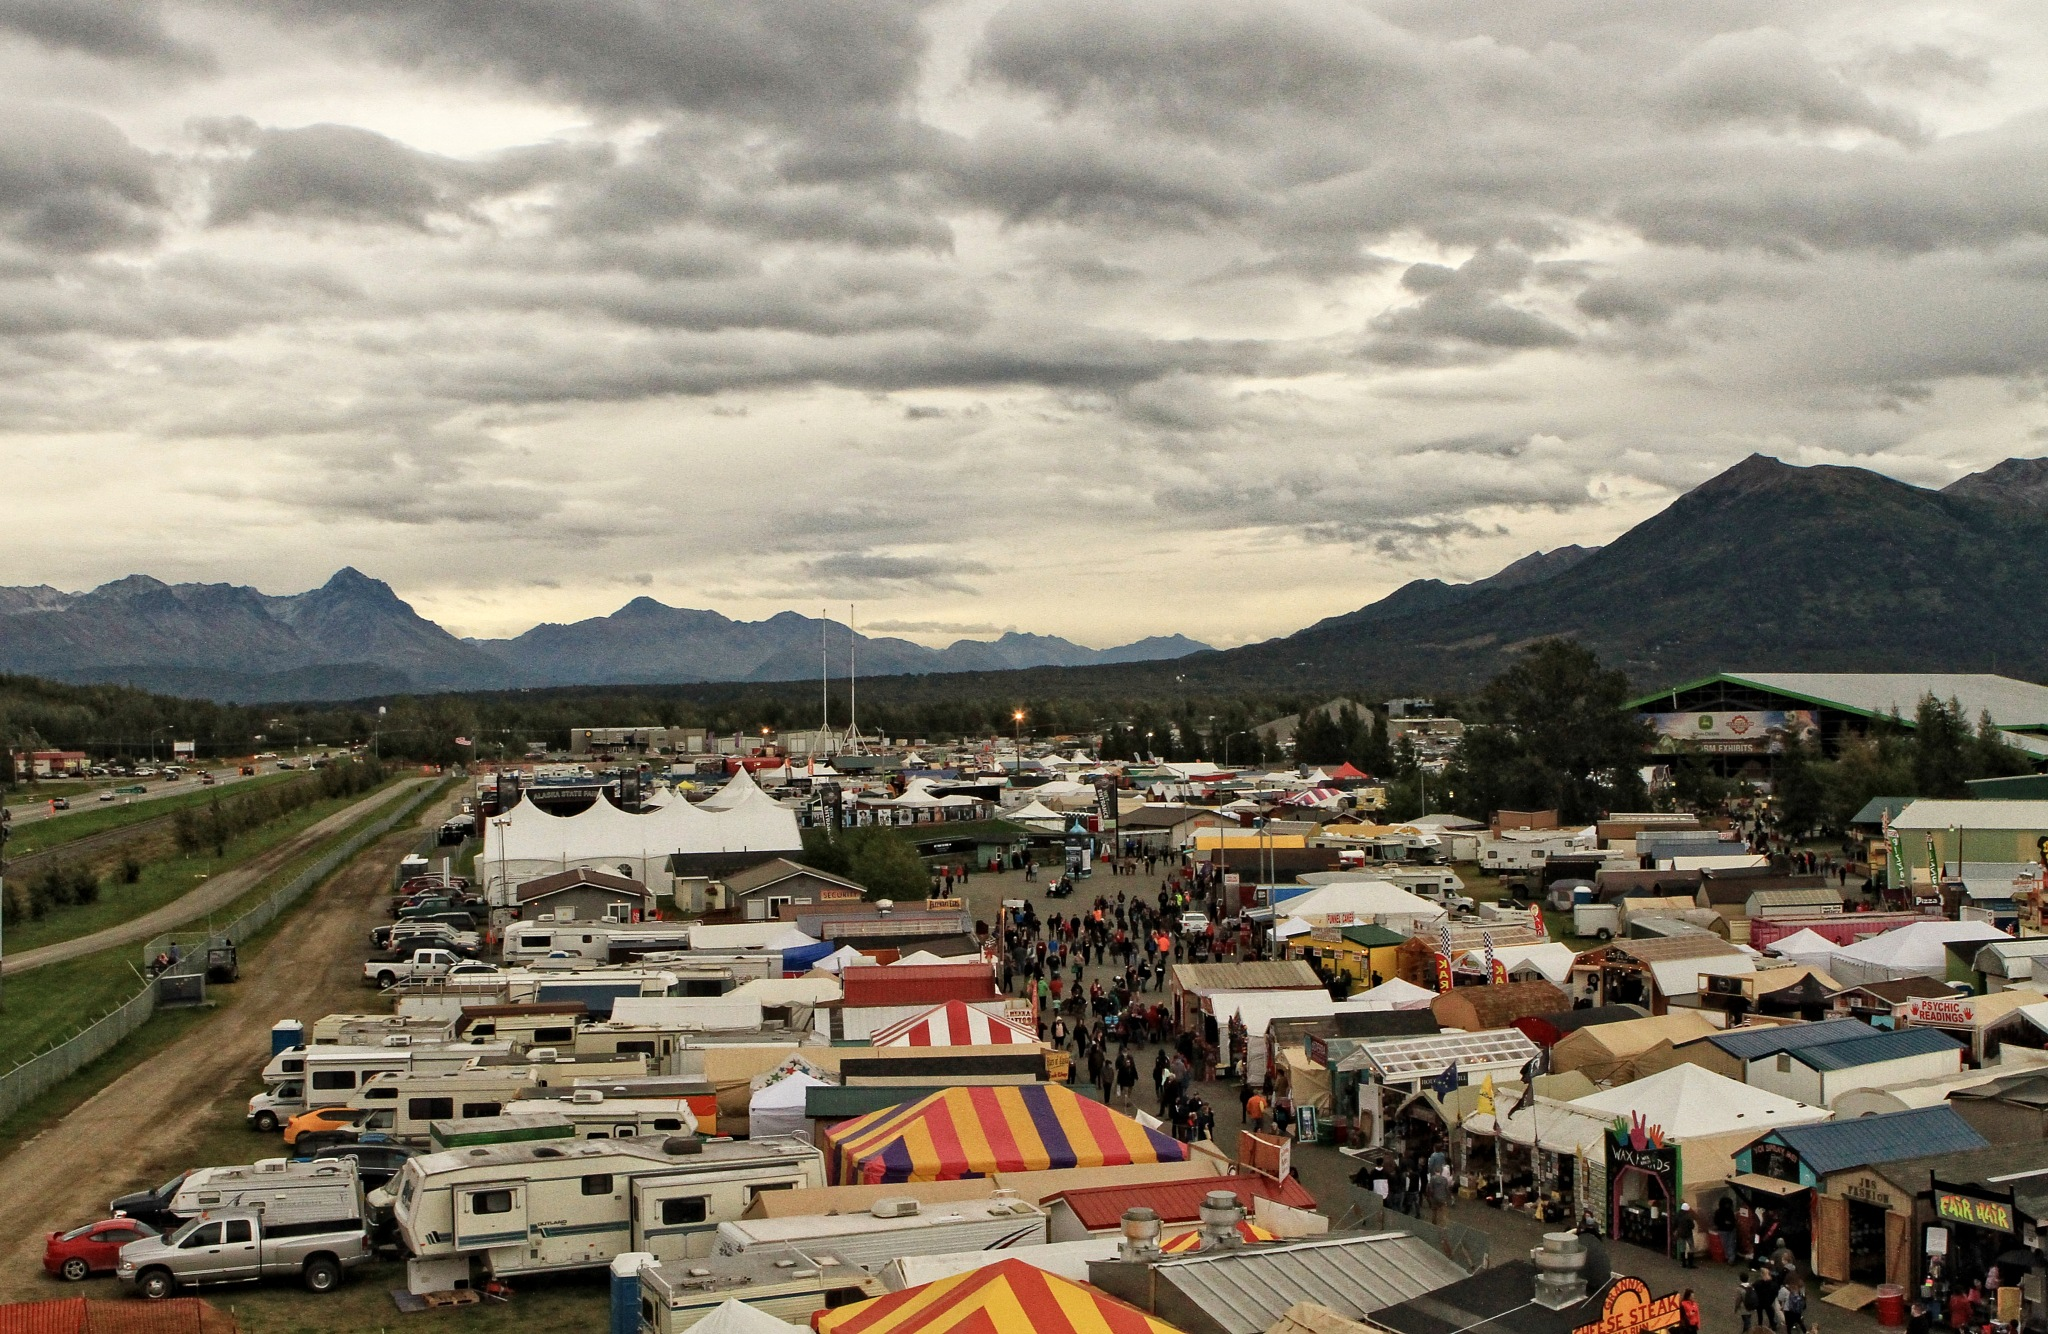 The Alaska State Fair by linda.scates1